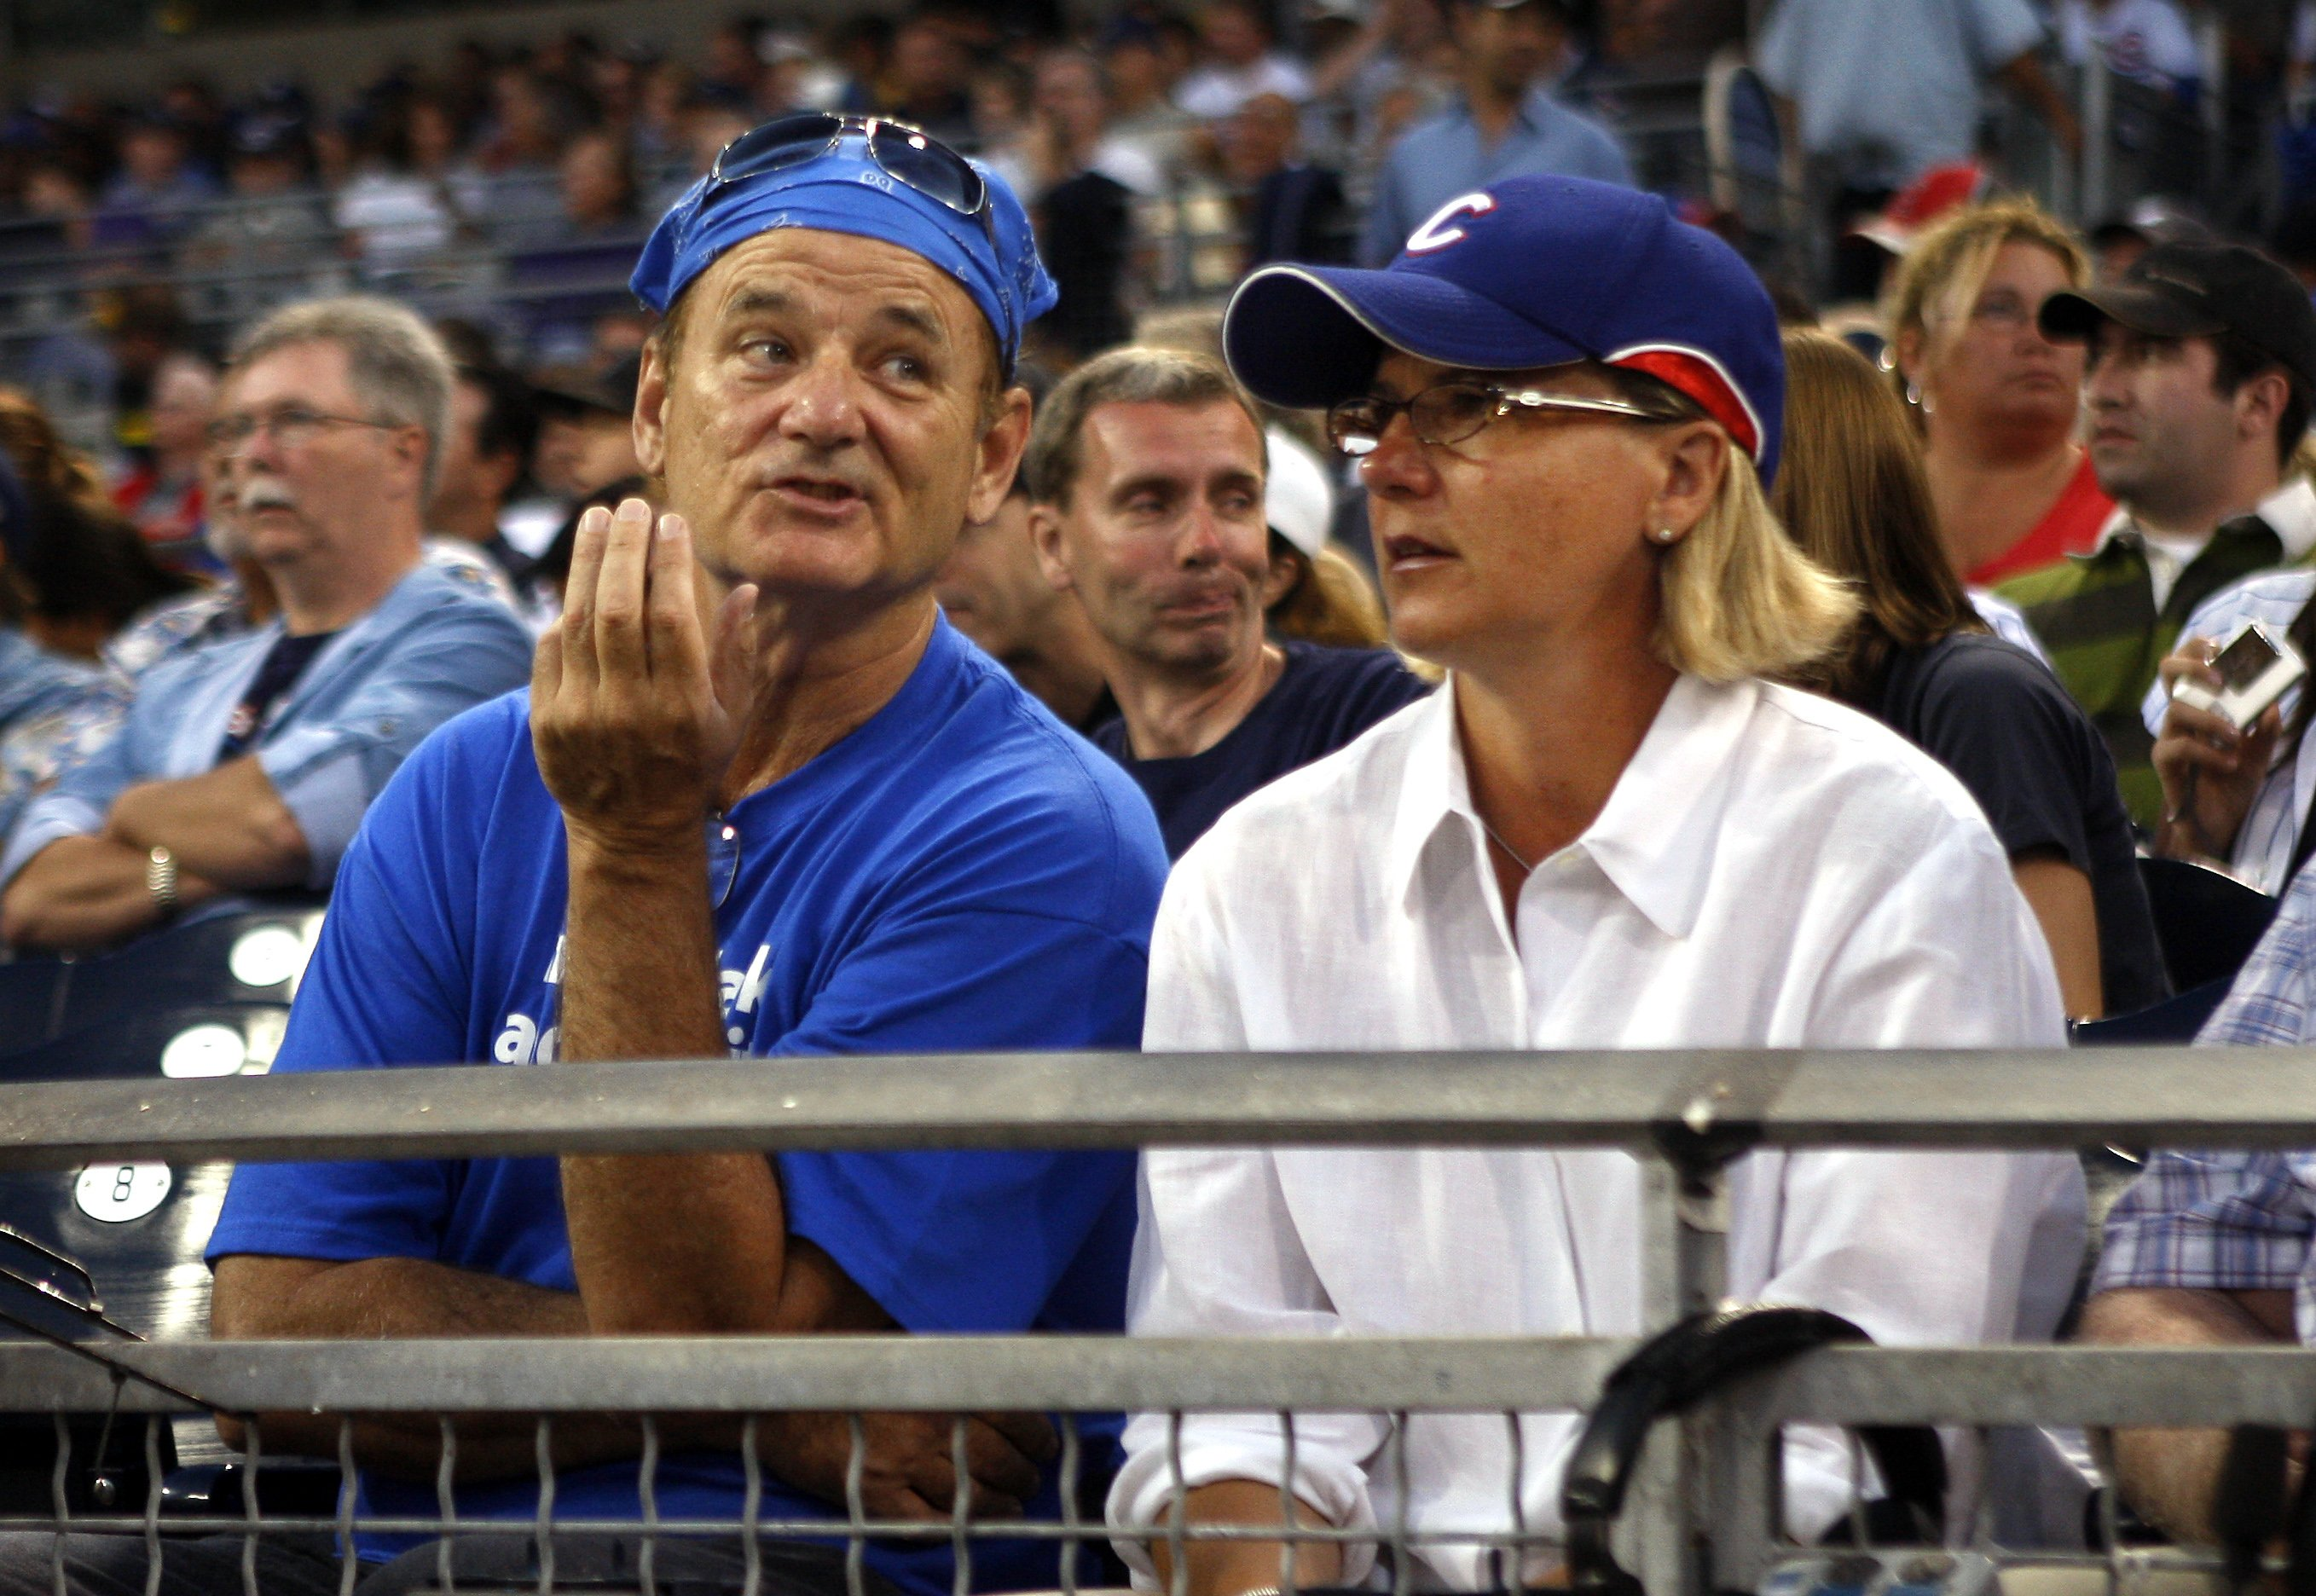 Celebrities among those long-suffering Chicago Cubs fans